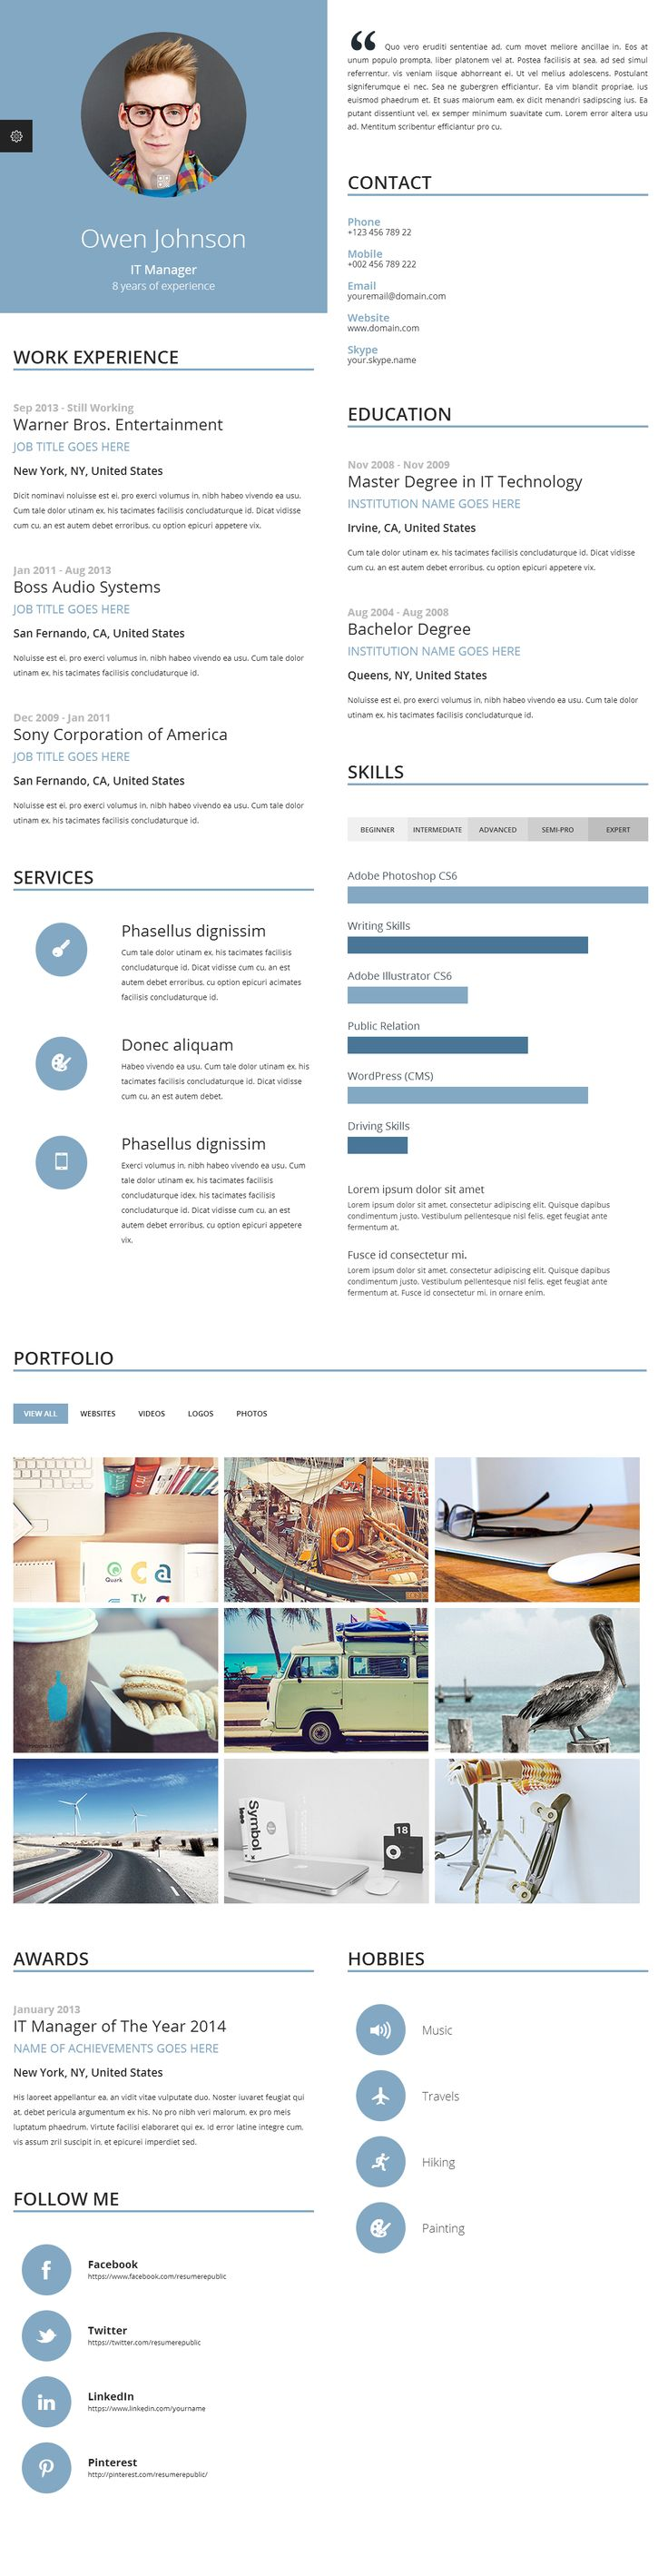 Proxima online resume template is unique online resume template because of its multi-column/news-paper, magazine style layout. Proxima online resume template allows resume content to be fitted into columns no matter how much data is entered into the resume or what is the screen resolution of the device in use. #jobsearch #careers #jobs #resume #resumetemplates #onlineresumes #CV #coverletter #templates #resumes